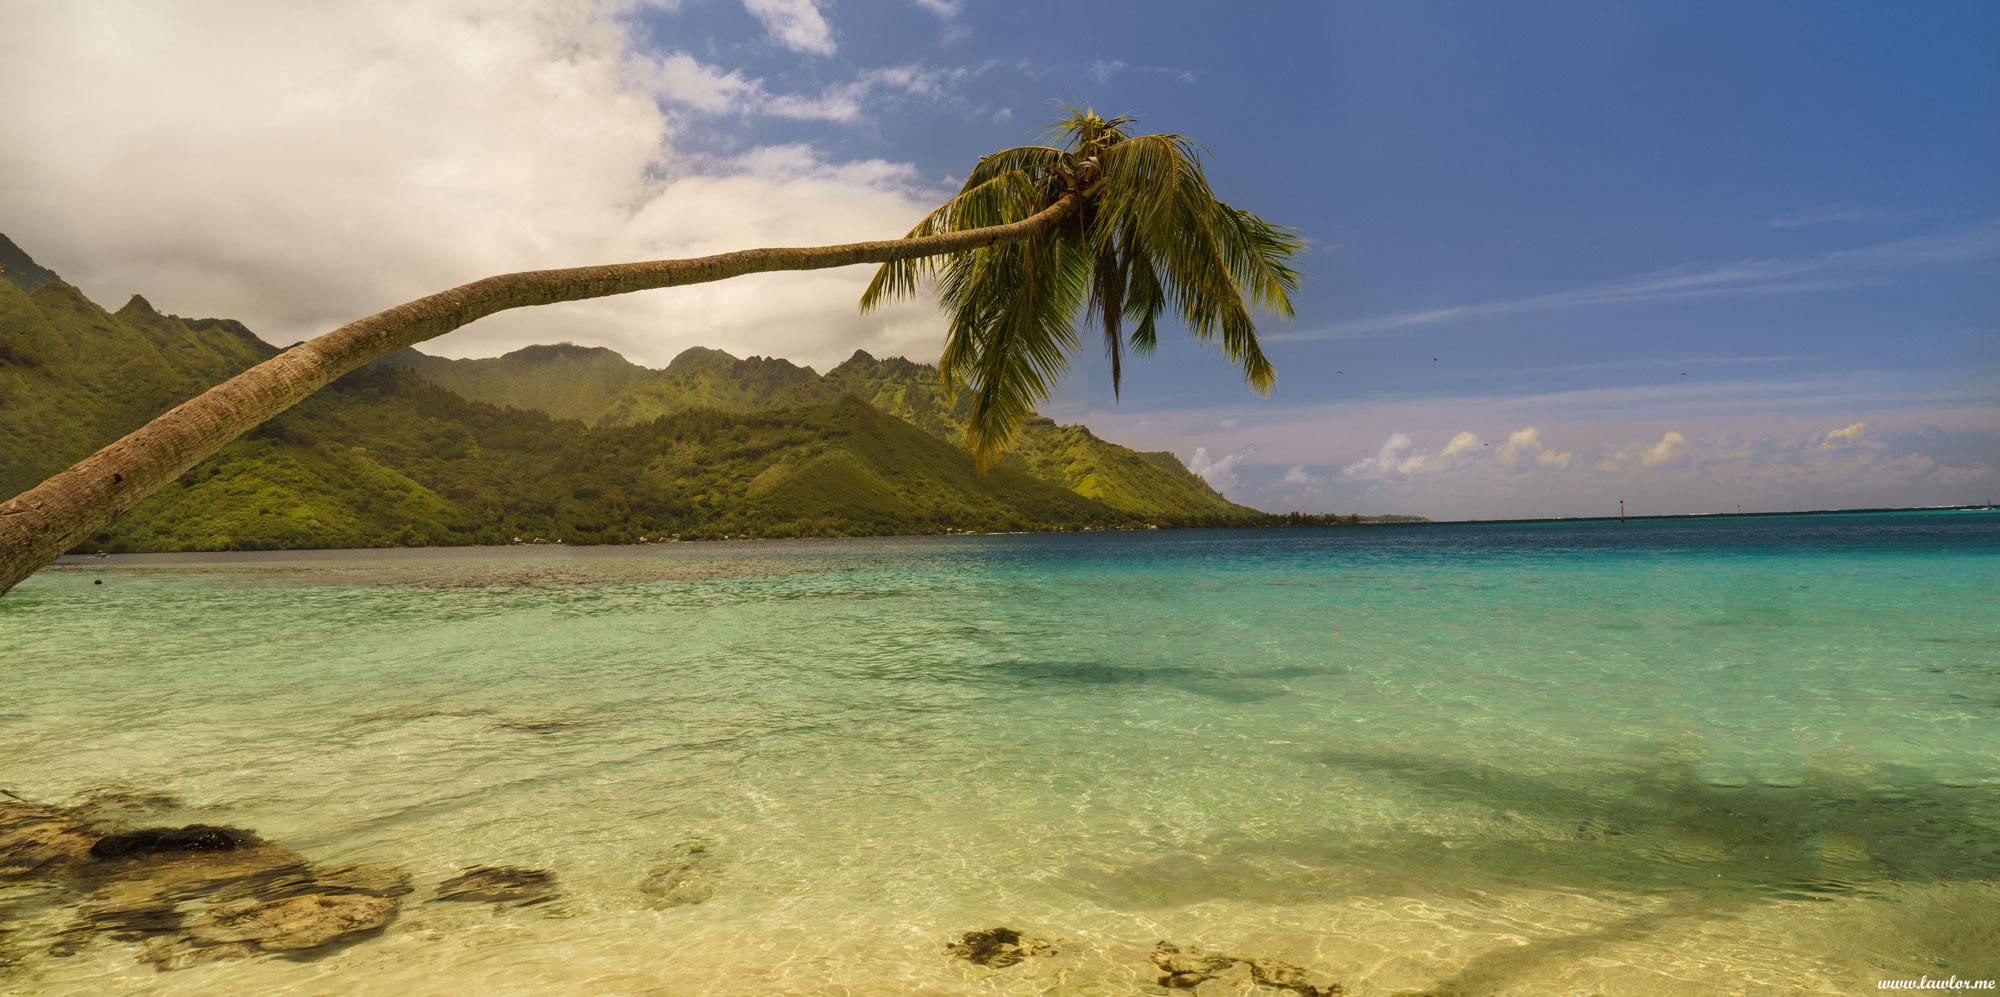 Opunohu Bay, Moorea - French Polynesia, Free Landscape Photography, free landscape photos, free nature images, free HD images, free high definition stock images, free stock images download, desktop background, desktop wallpapers, free screensaver, landscape photography